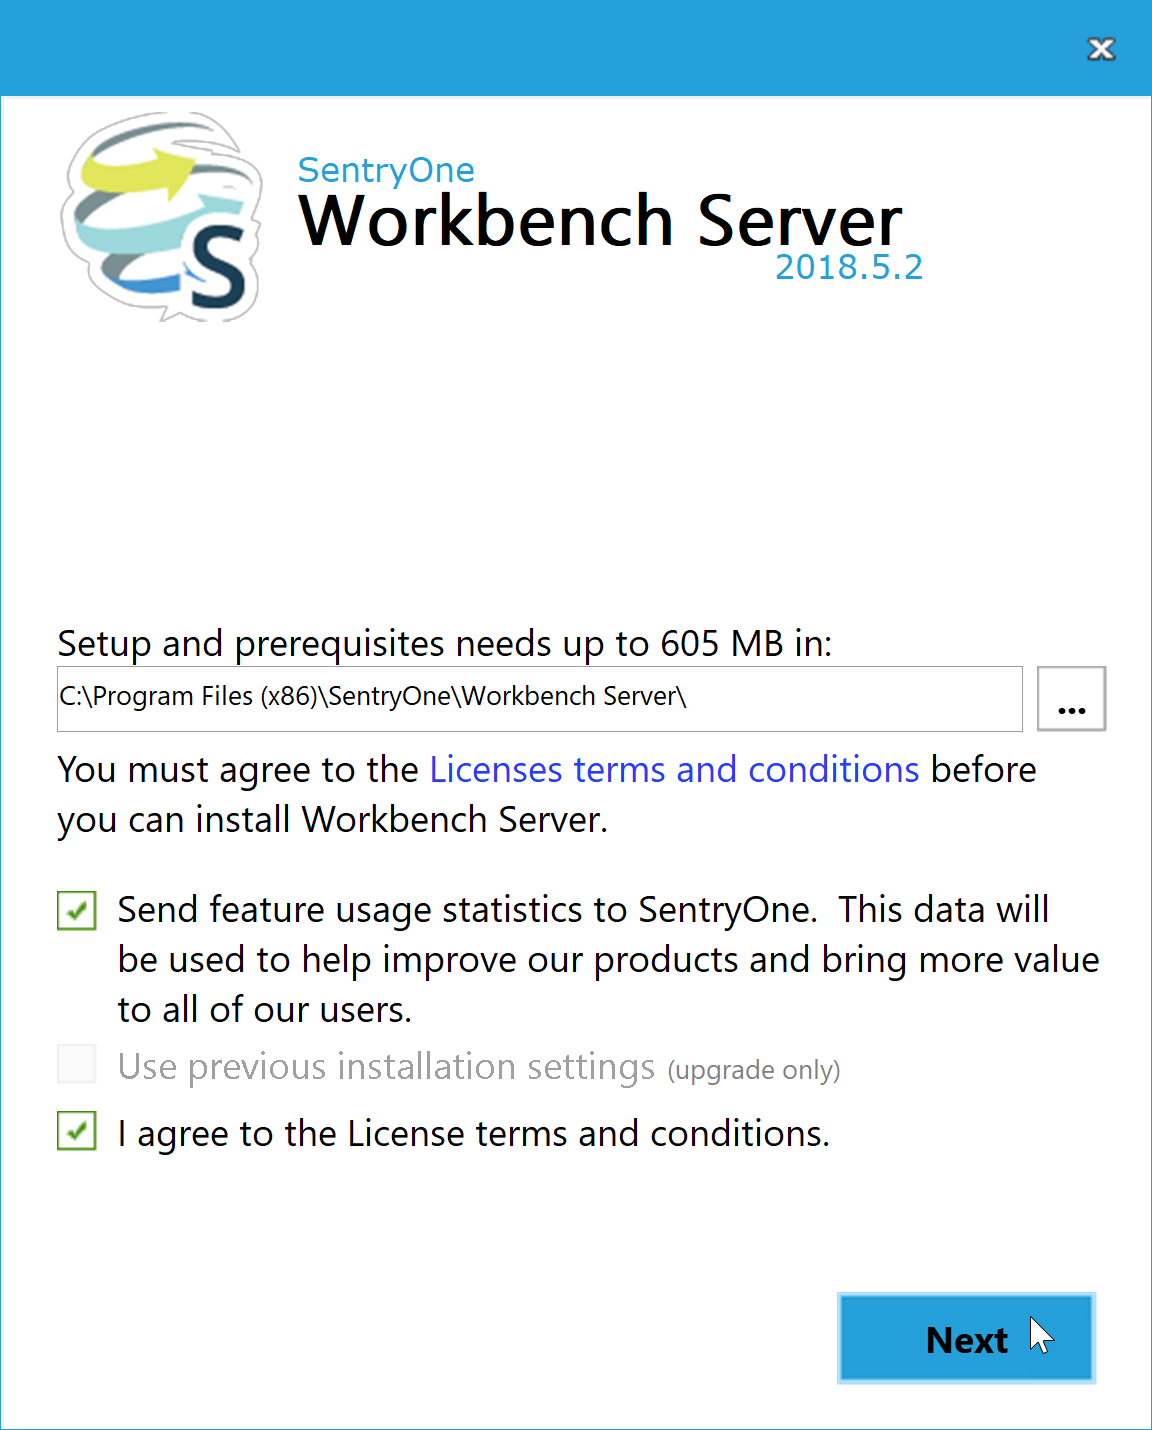 Workbench Server License terms and conditions